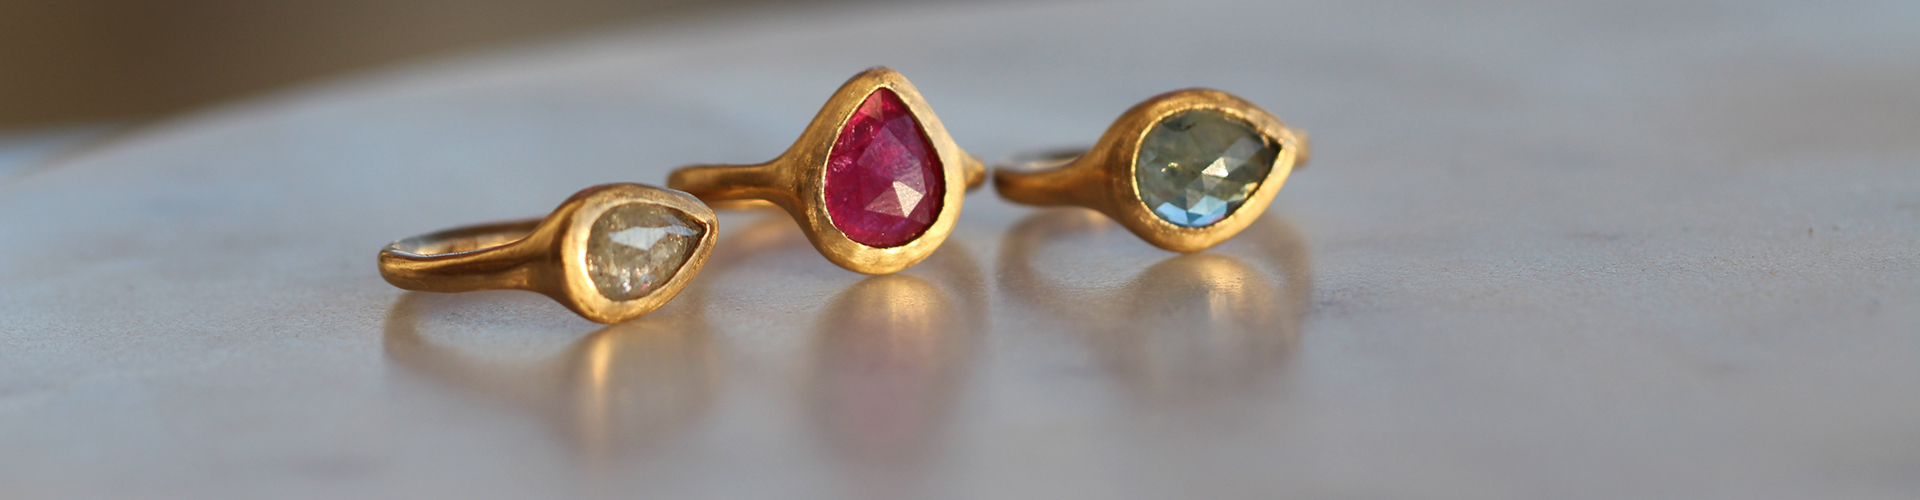 Isabel-Borland-Gemstone-Rings-at-Voiage-Los-Angeles